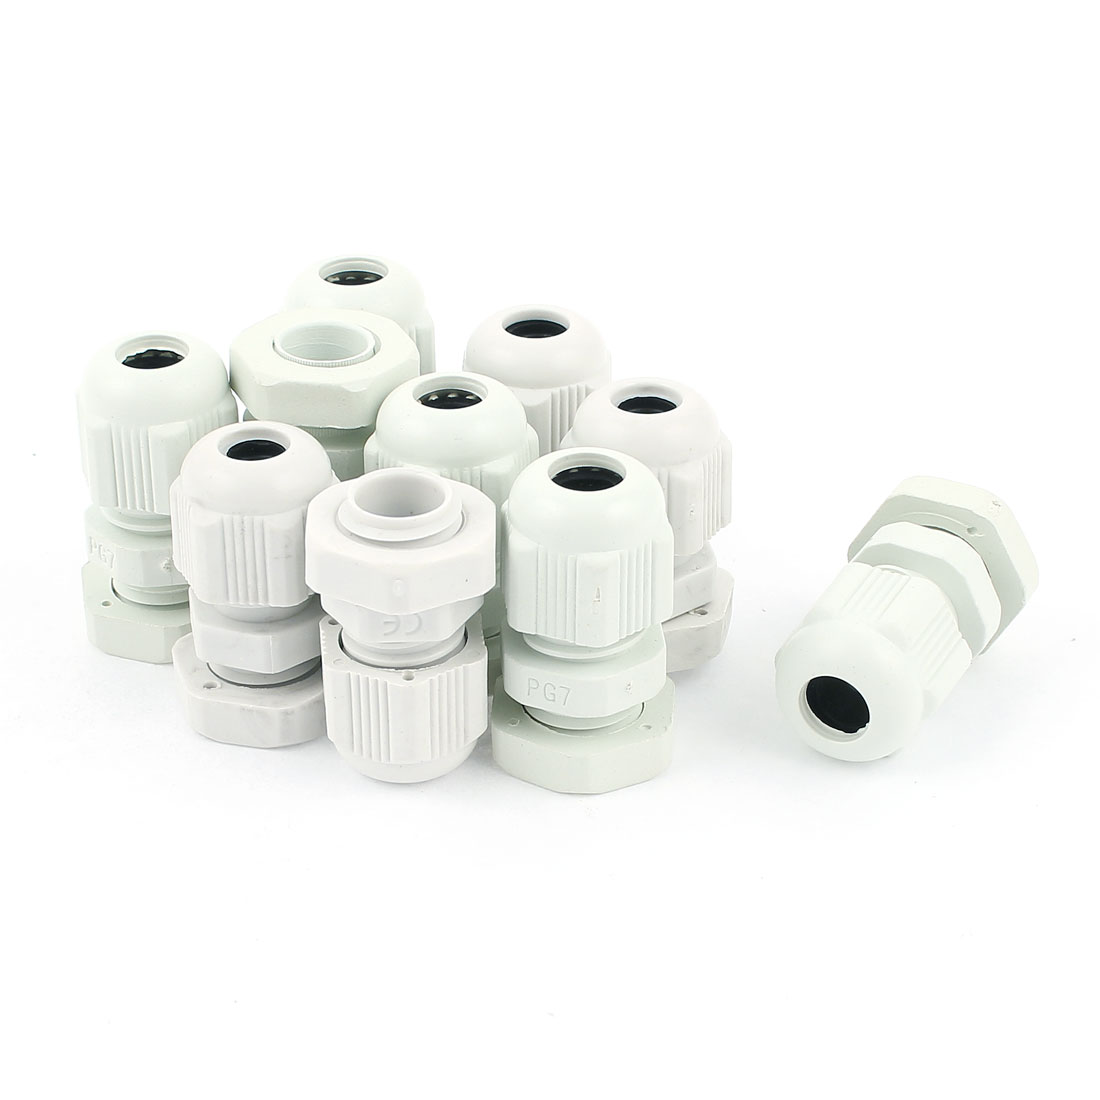 10 Pcs PG7 3.5mm to 6mm Waterproof Connector Adapter Plastic Cables Glands White